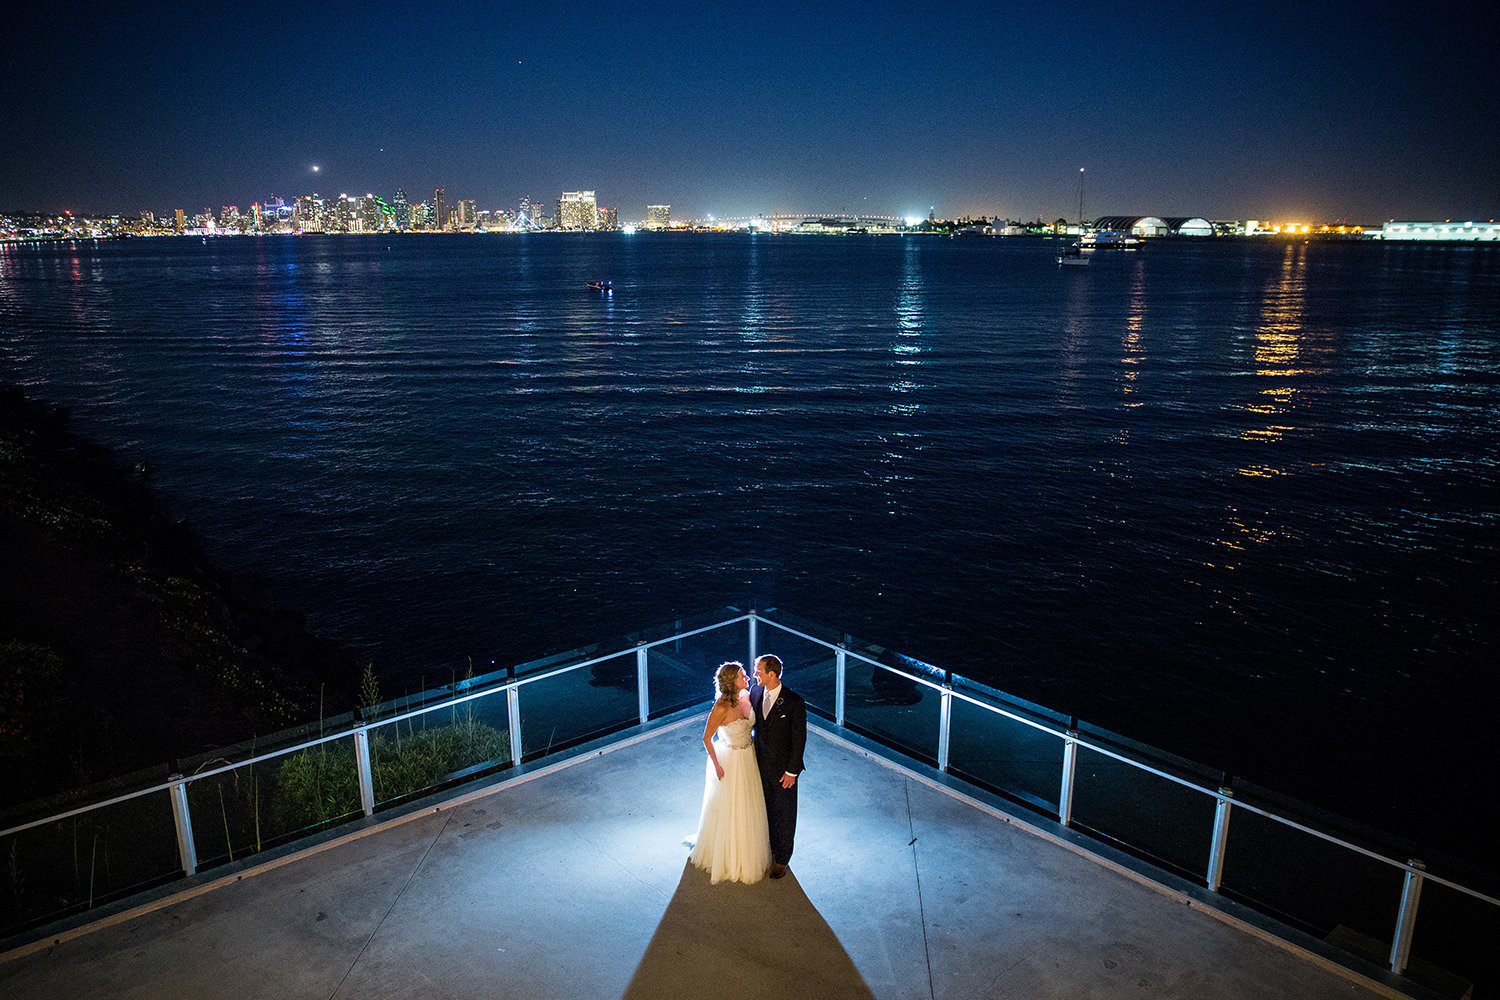 night shot with bride and groom